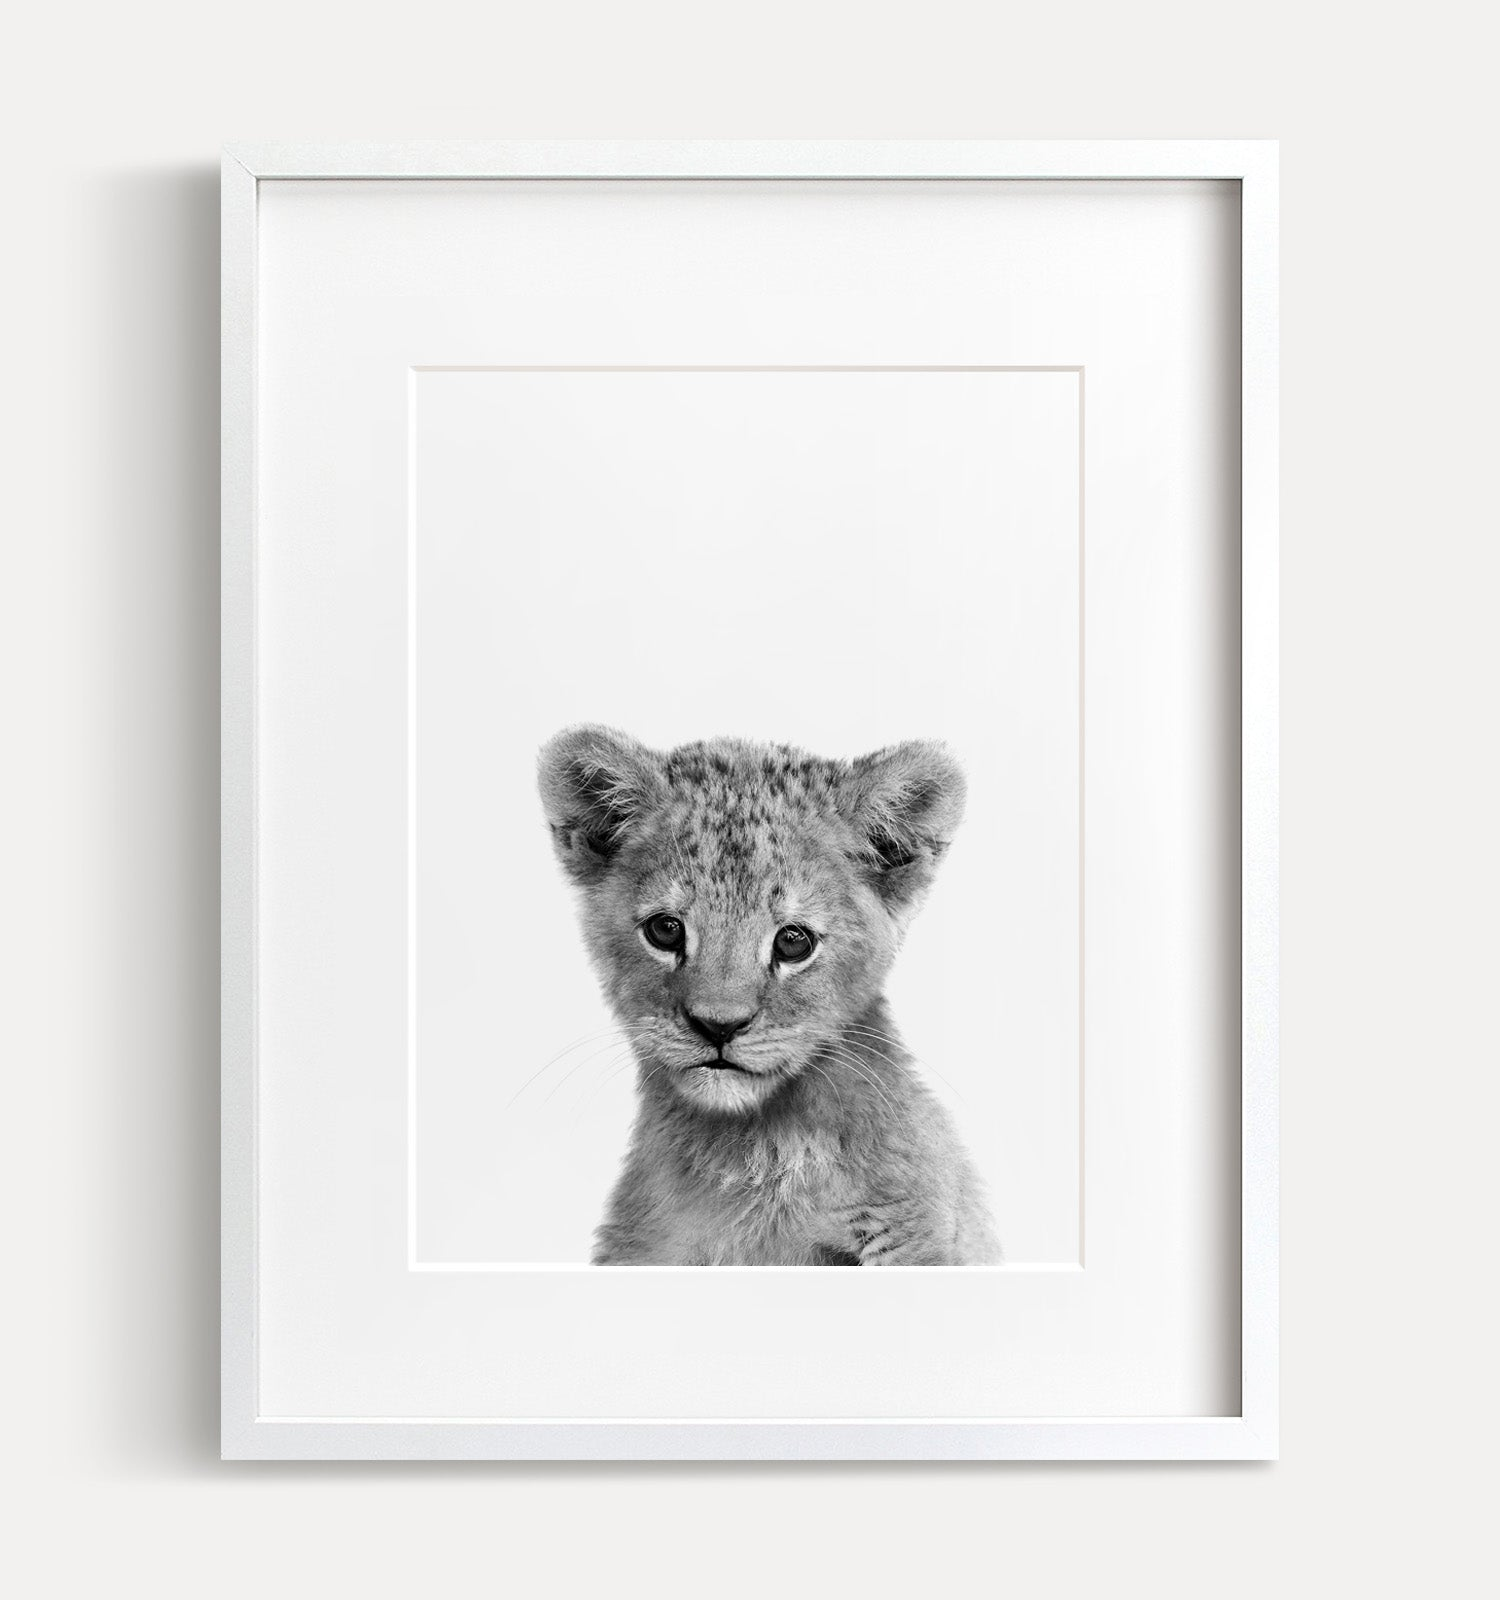 Baby Lion Print - Black and White - The Crown Prints